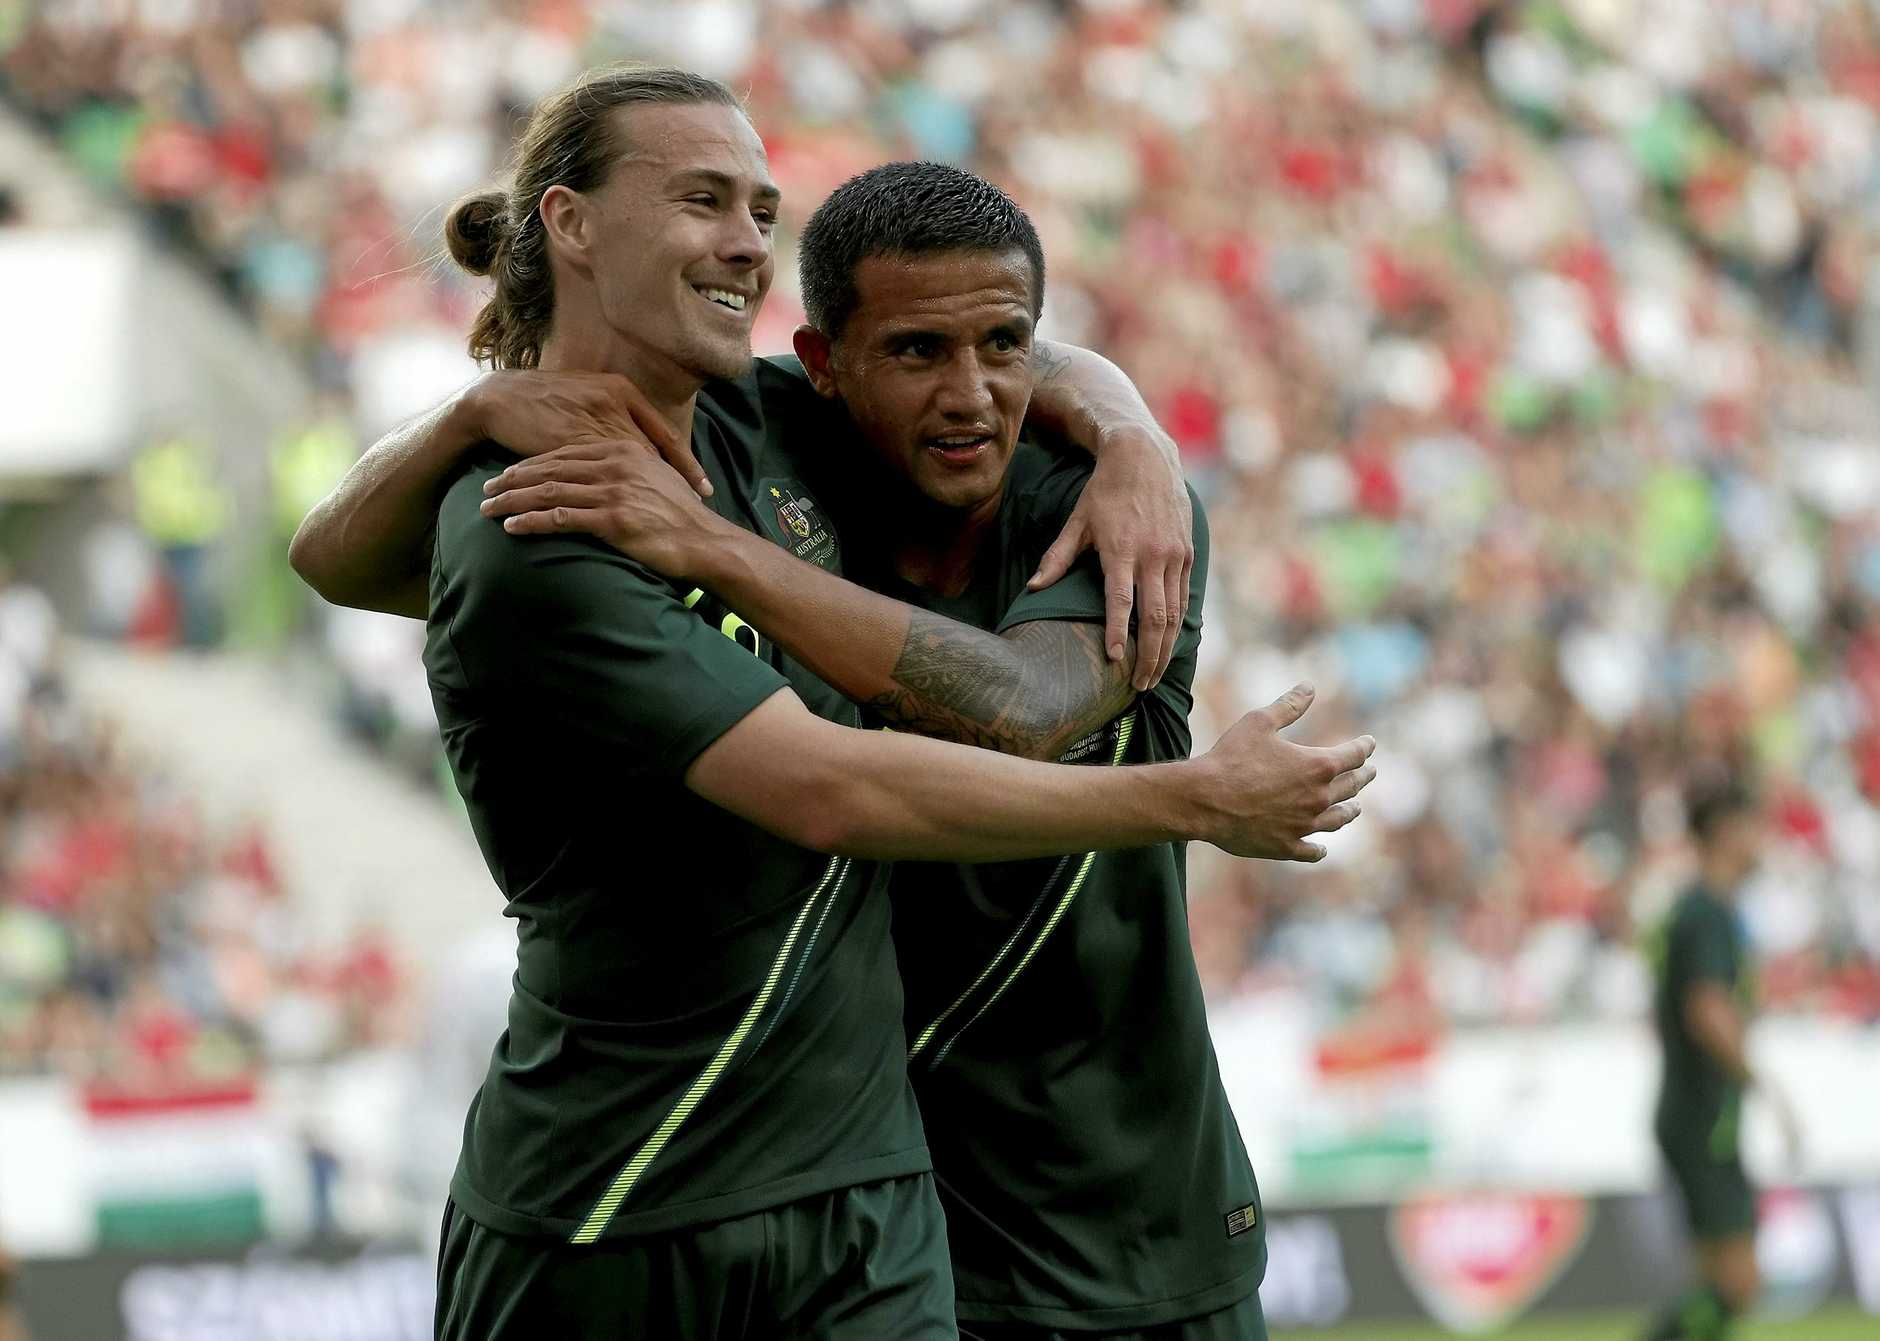 Socceroos Jackson Irvine (L) and Tim Cahill celebrate after the Hungarians scored an own goal during the Socceroos v Hungary friendly at Groupama Arena in Budapest.